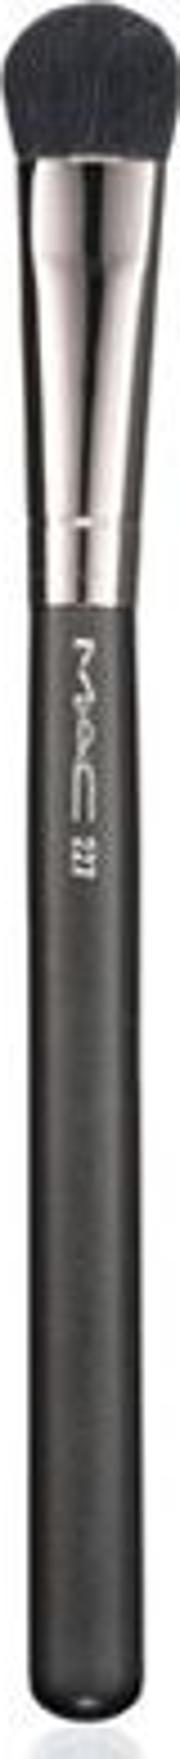 Mac , M·a·c 227 Large Fluff Brush